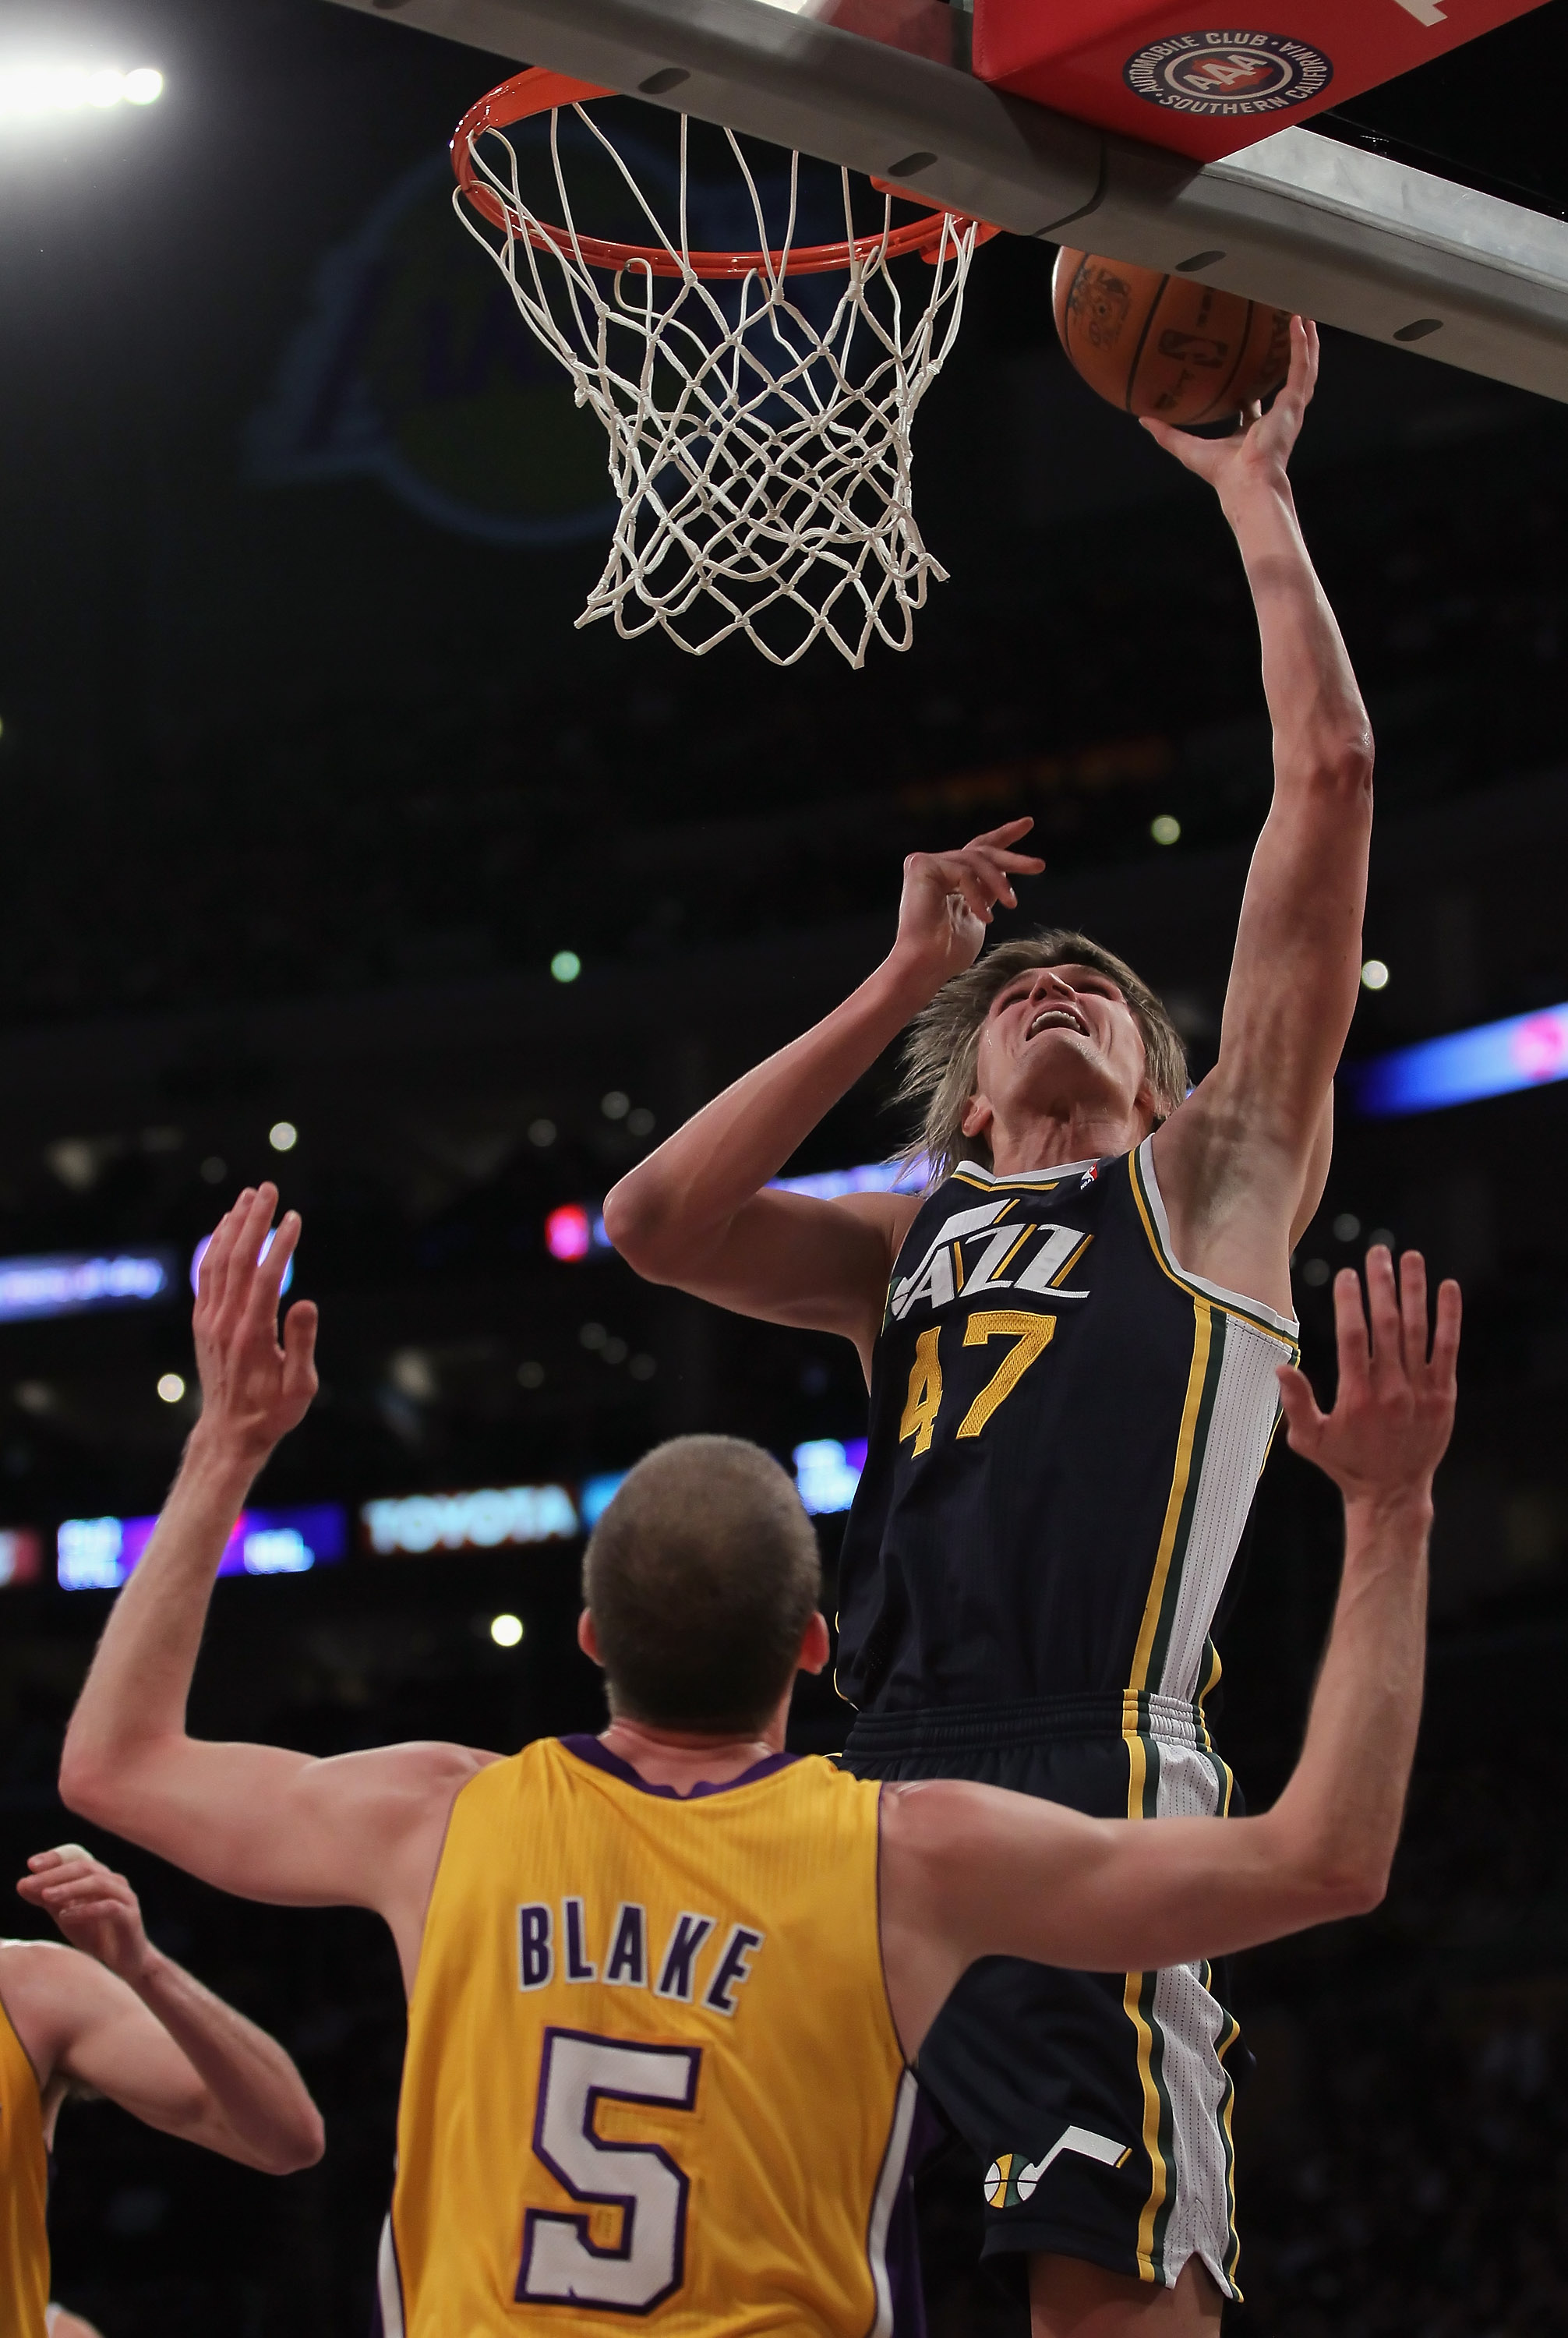 LOS ANGELES, CA - JANUARY 25:  Andrei Kirilenko #47 of the Utah Jazz drives to the basket over Steve Blake #5 of the Los Angeles Lakers in the first half at Staples Center on January 25, 2011 in Los Angeles, California. The Lakers defeated the Jazz 120-91